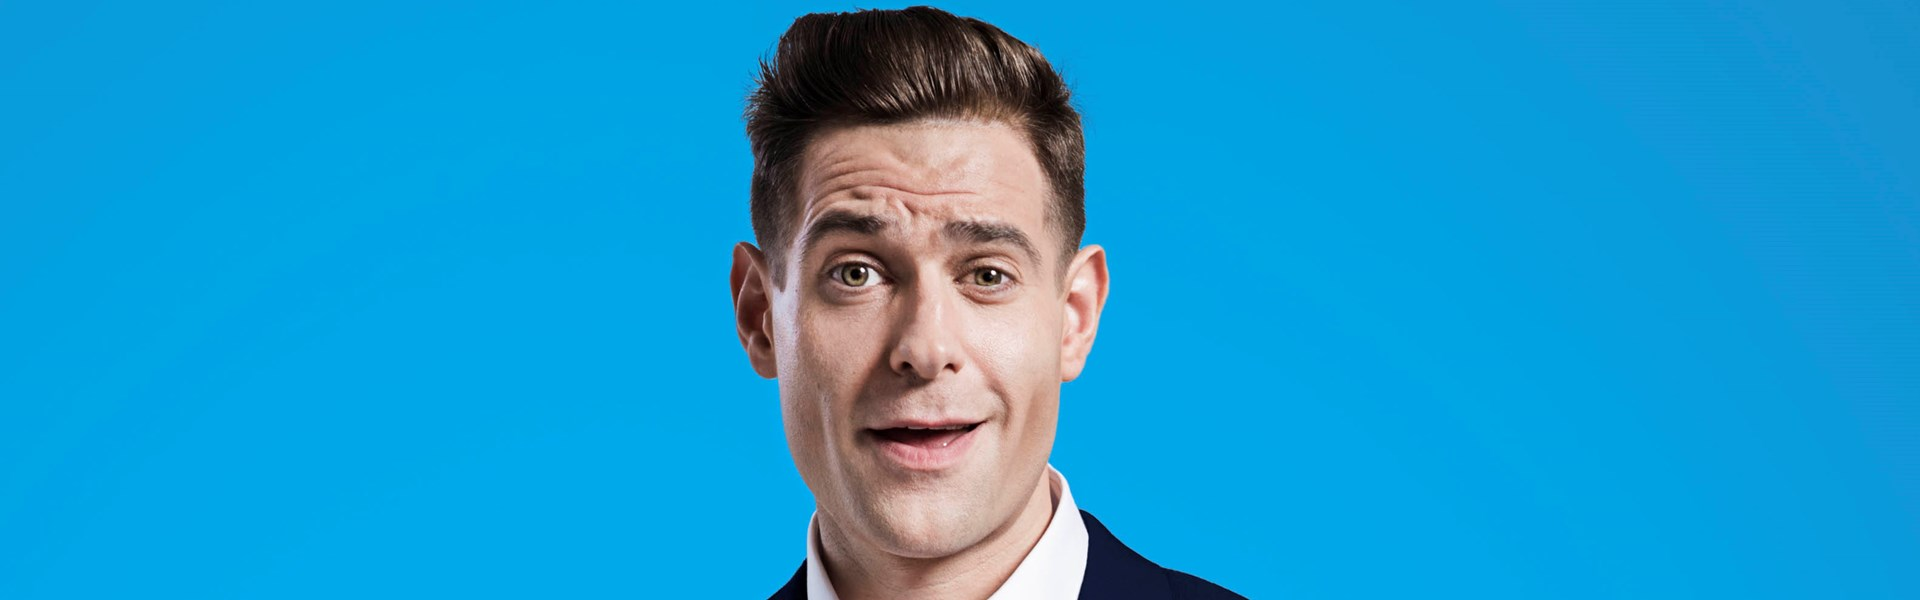 Lee Nelson: Serious Joker